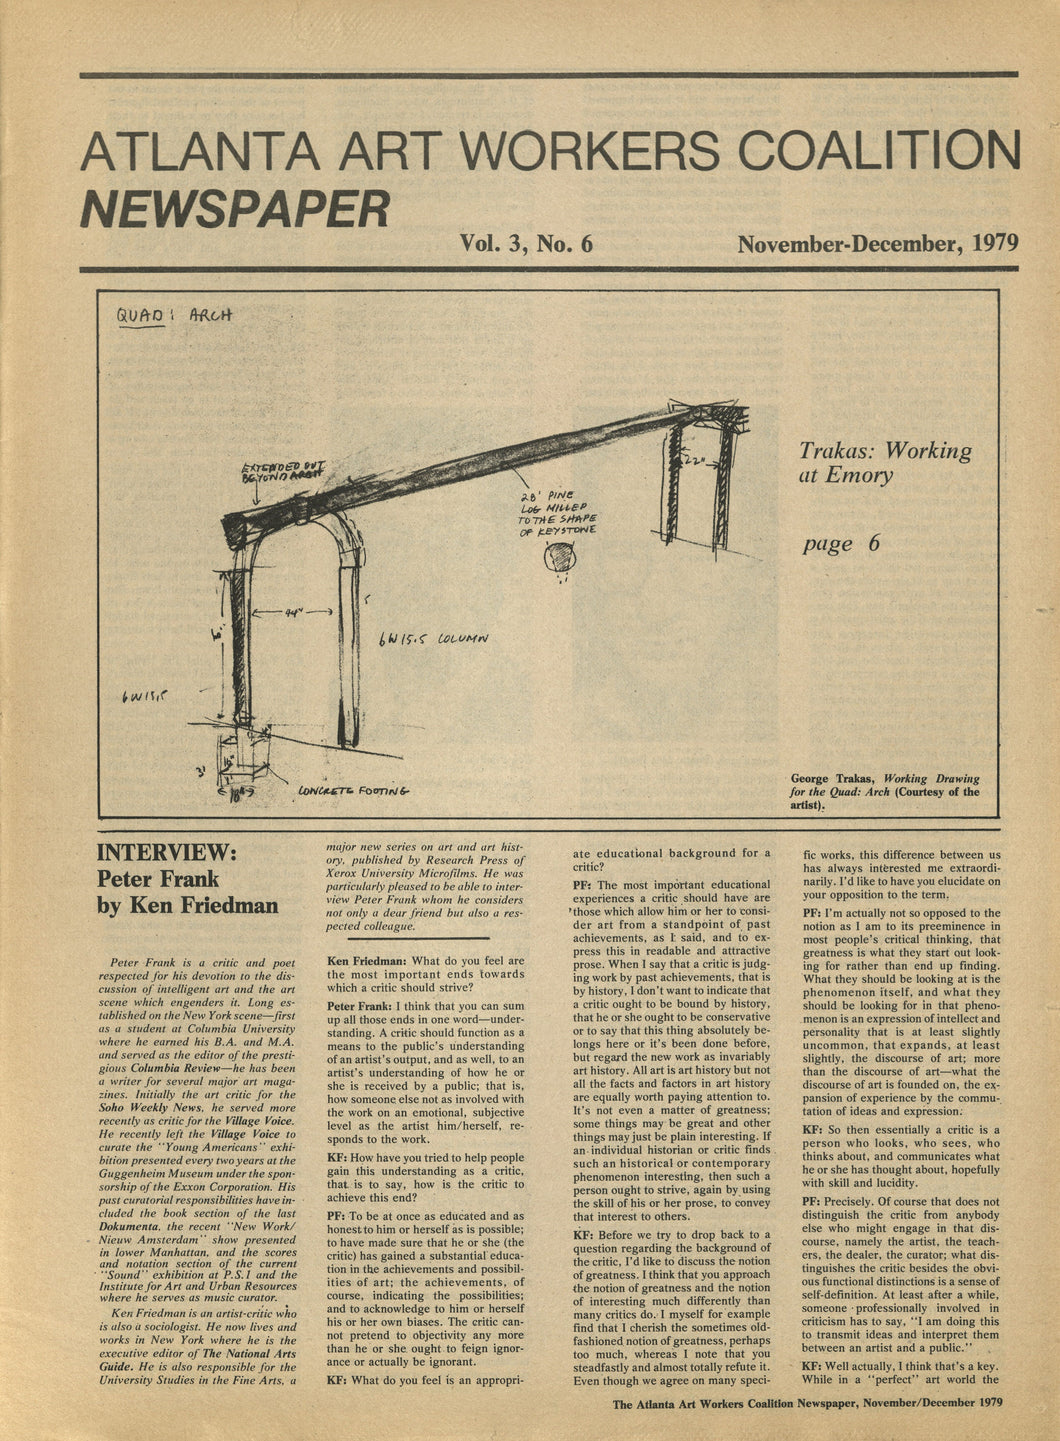 ART PAPERS 03.06 - Nov/Dec 1979 - SOLD OUT